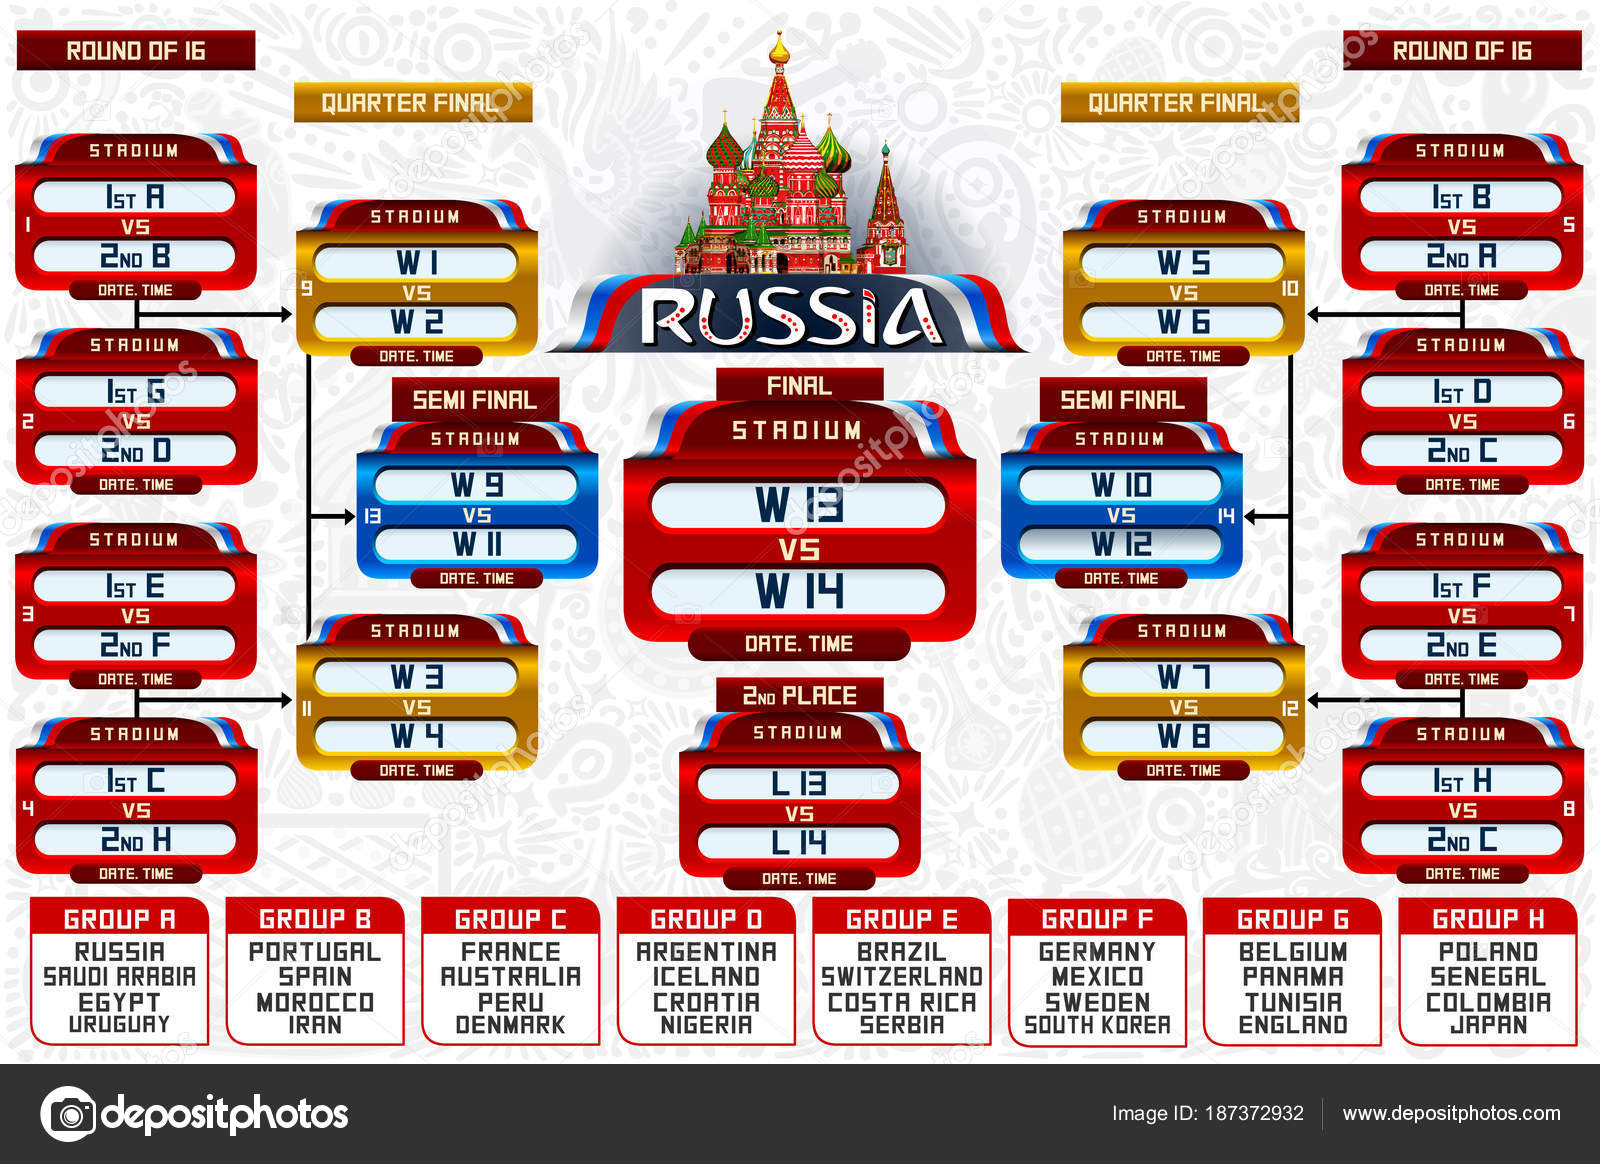 Depositphotos Stock Illustration Russia World Cup Groups Schedule Soccer Poster Tournament